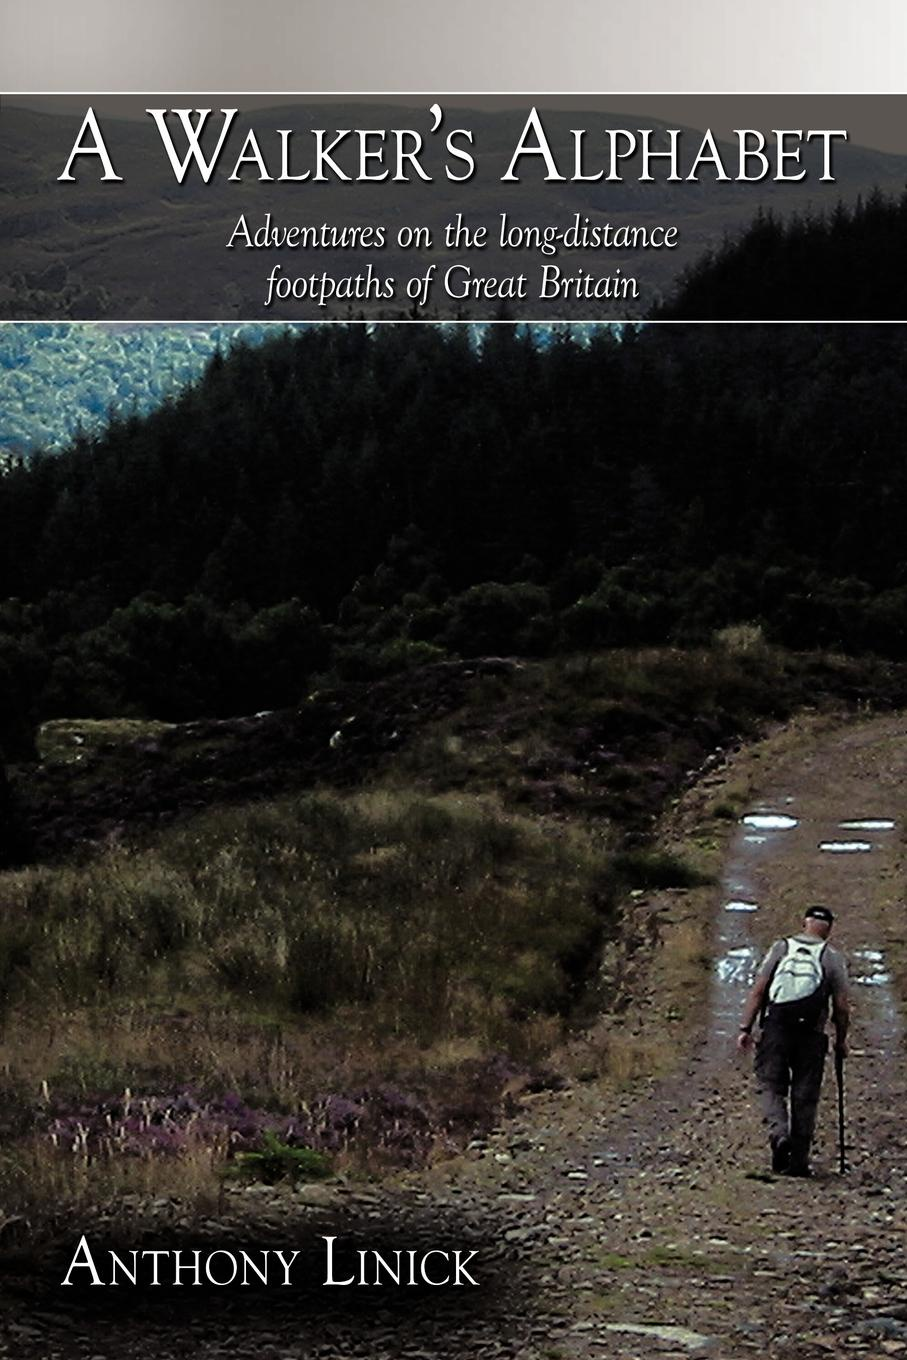 A Walker.s Alphabet. Adventures on the Long-Distance Footpaths of Great Britain